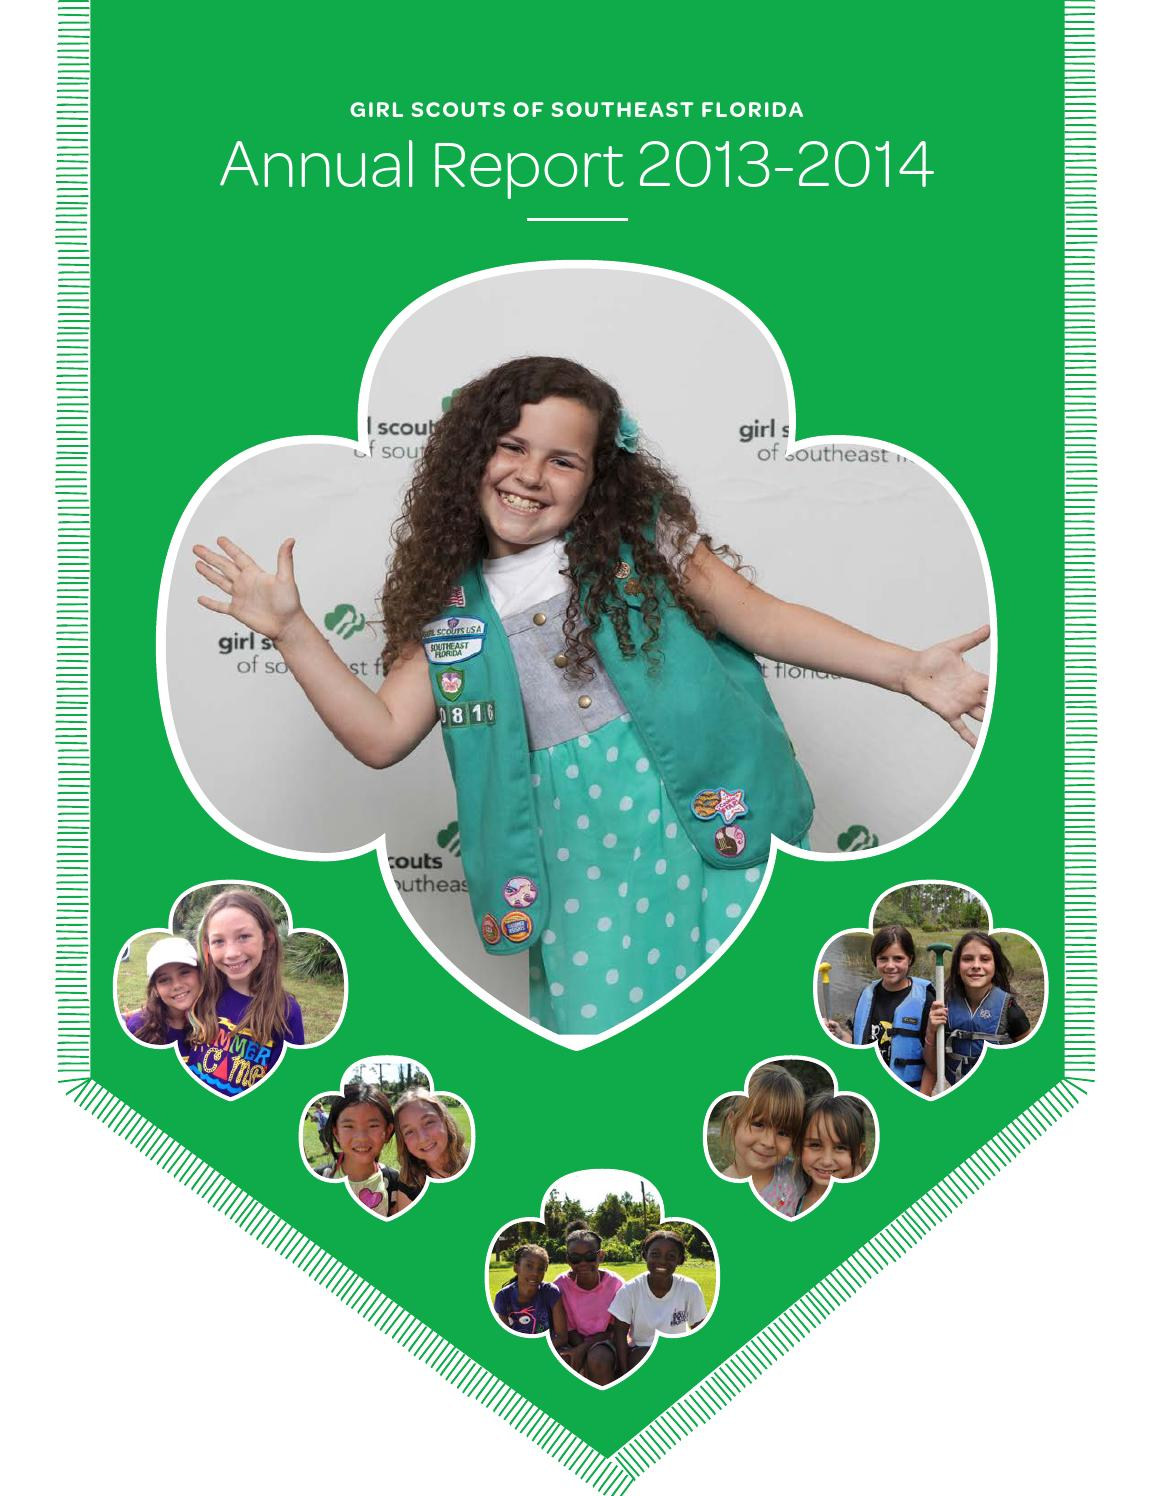 gssef annual report 2013 2014 by girl scouts of southeast